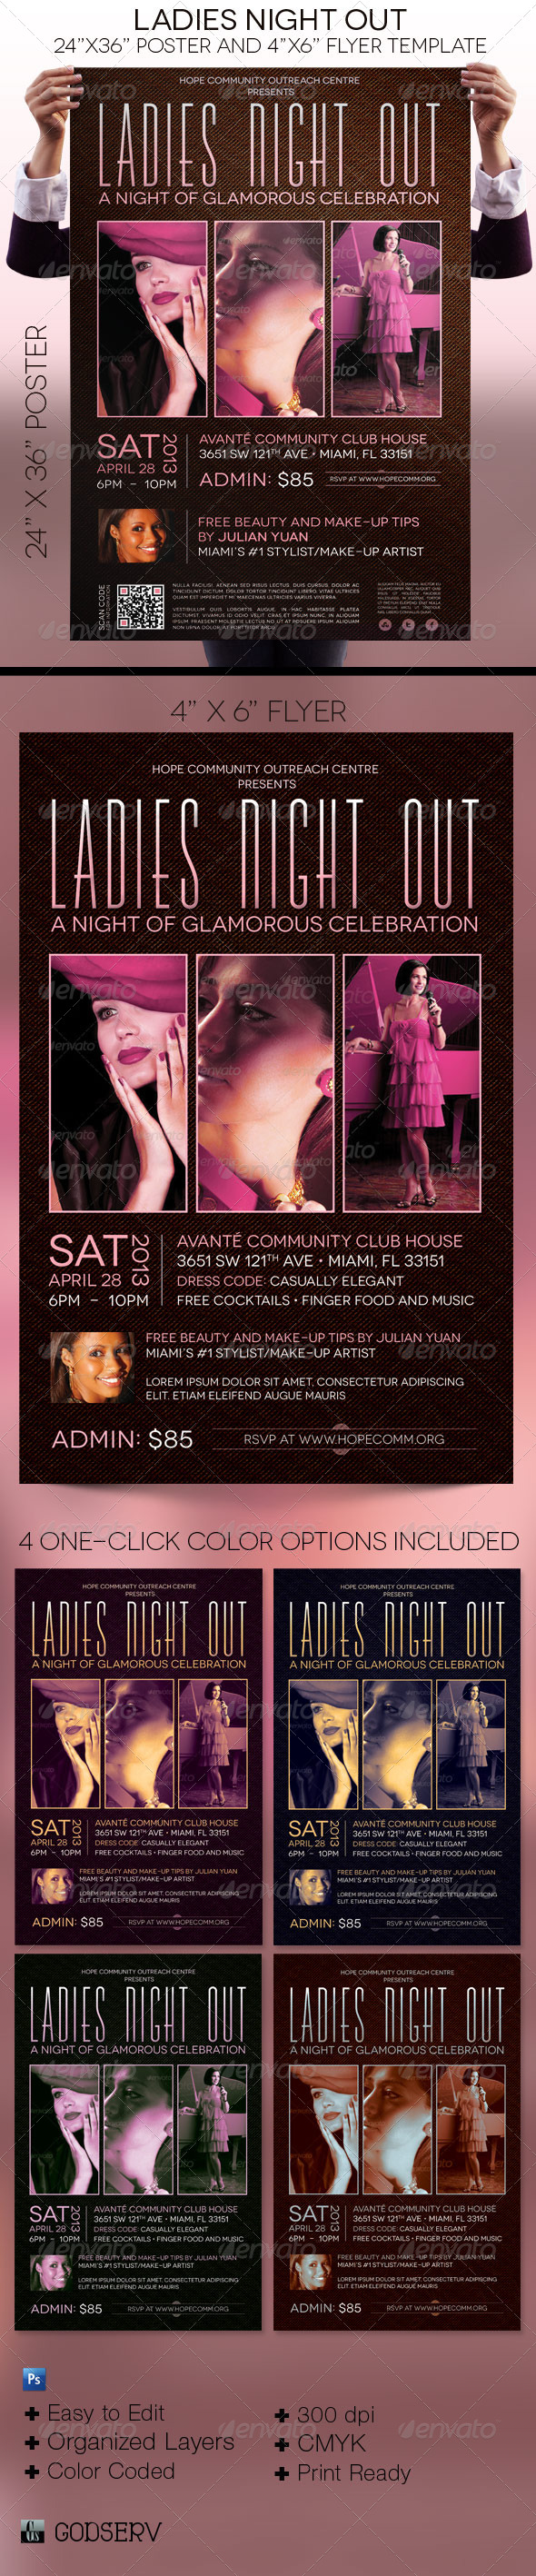 Ladies Night Out Poster and Flyer Template - Events Flyers